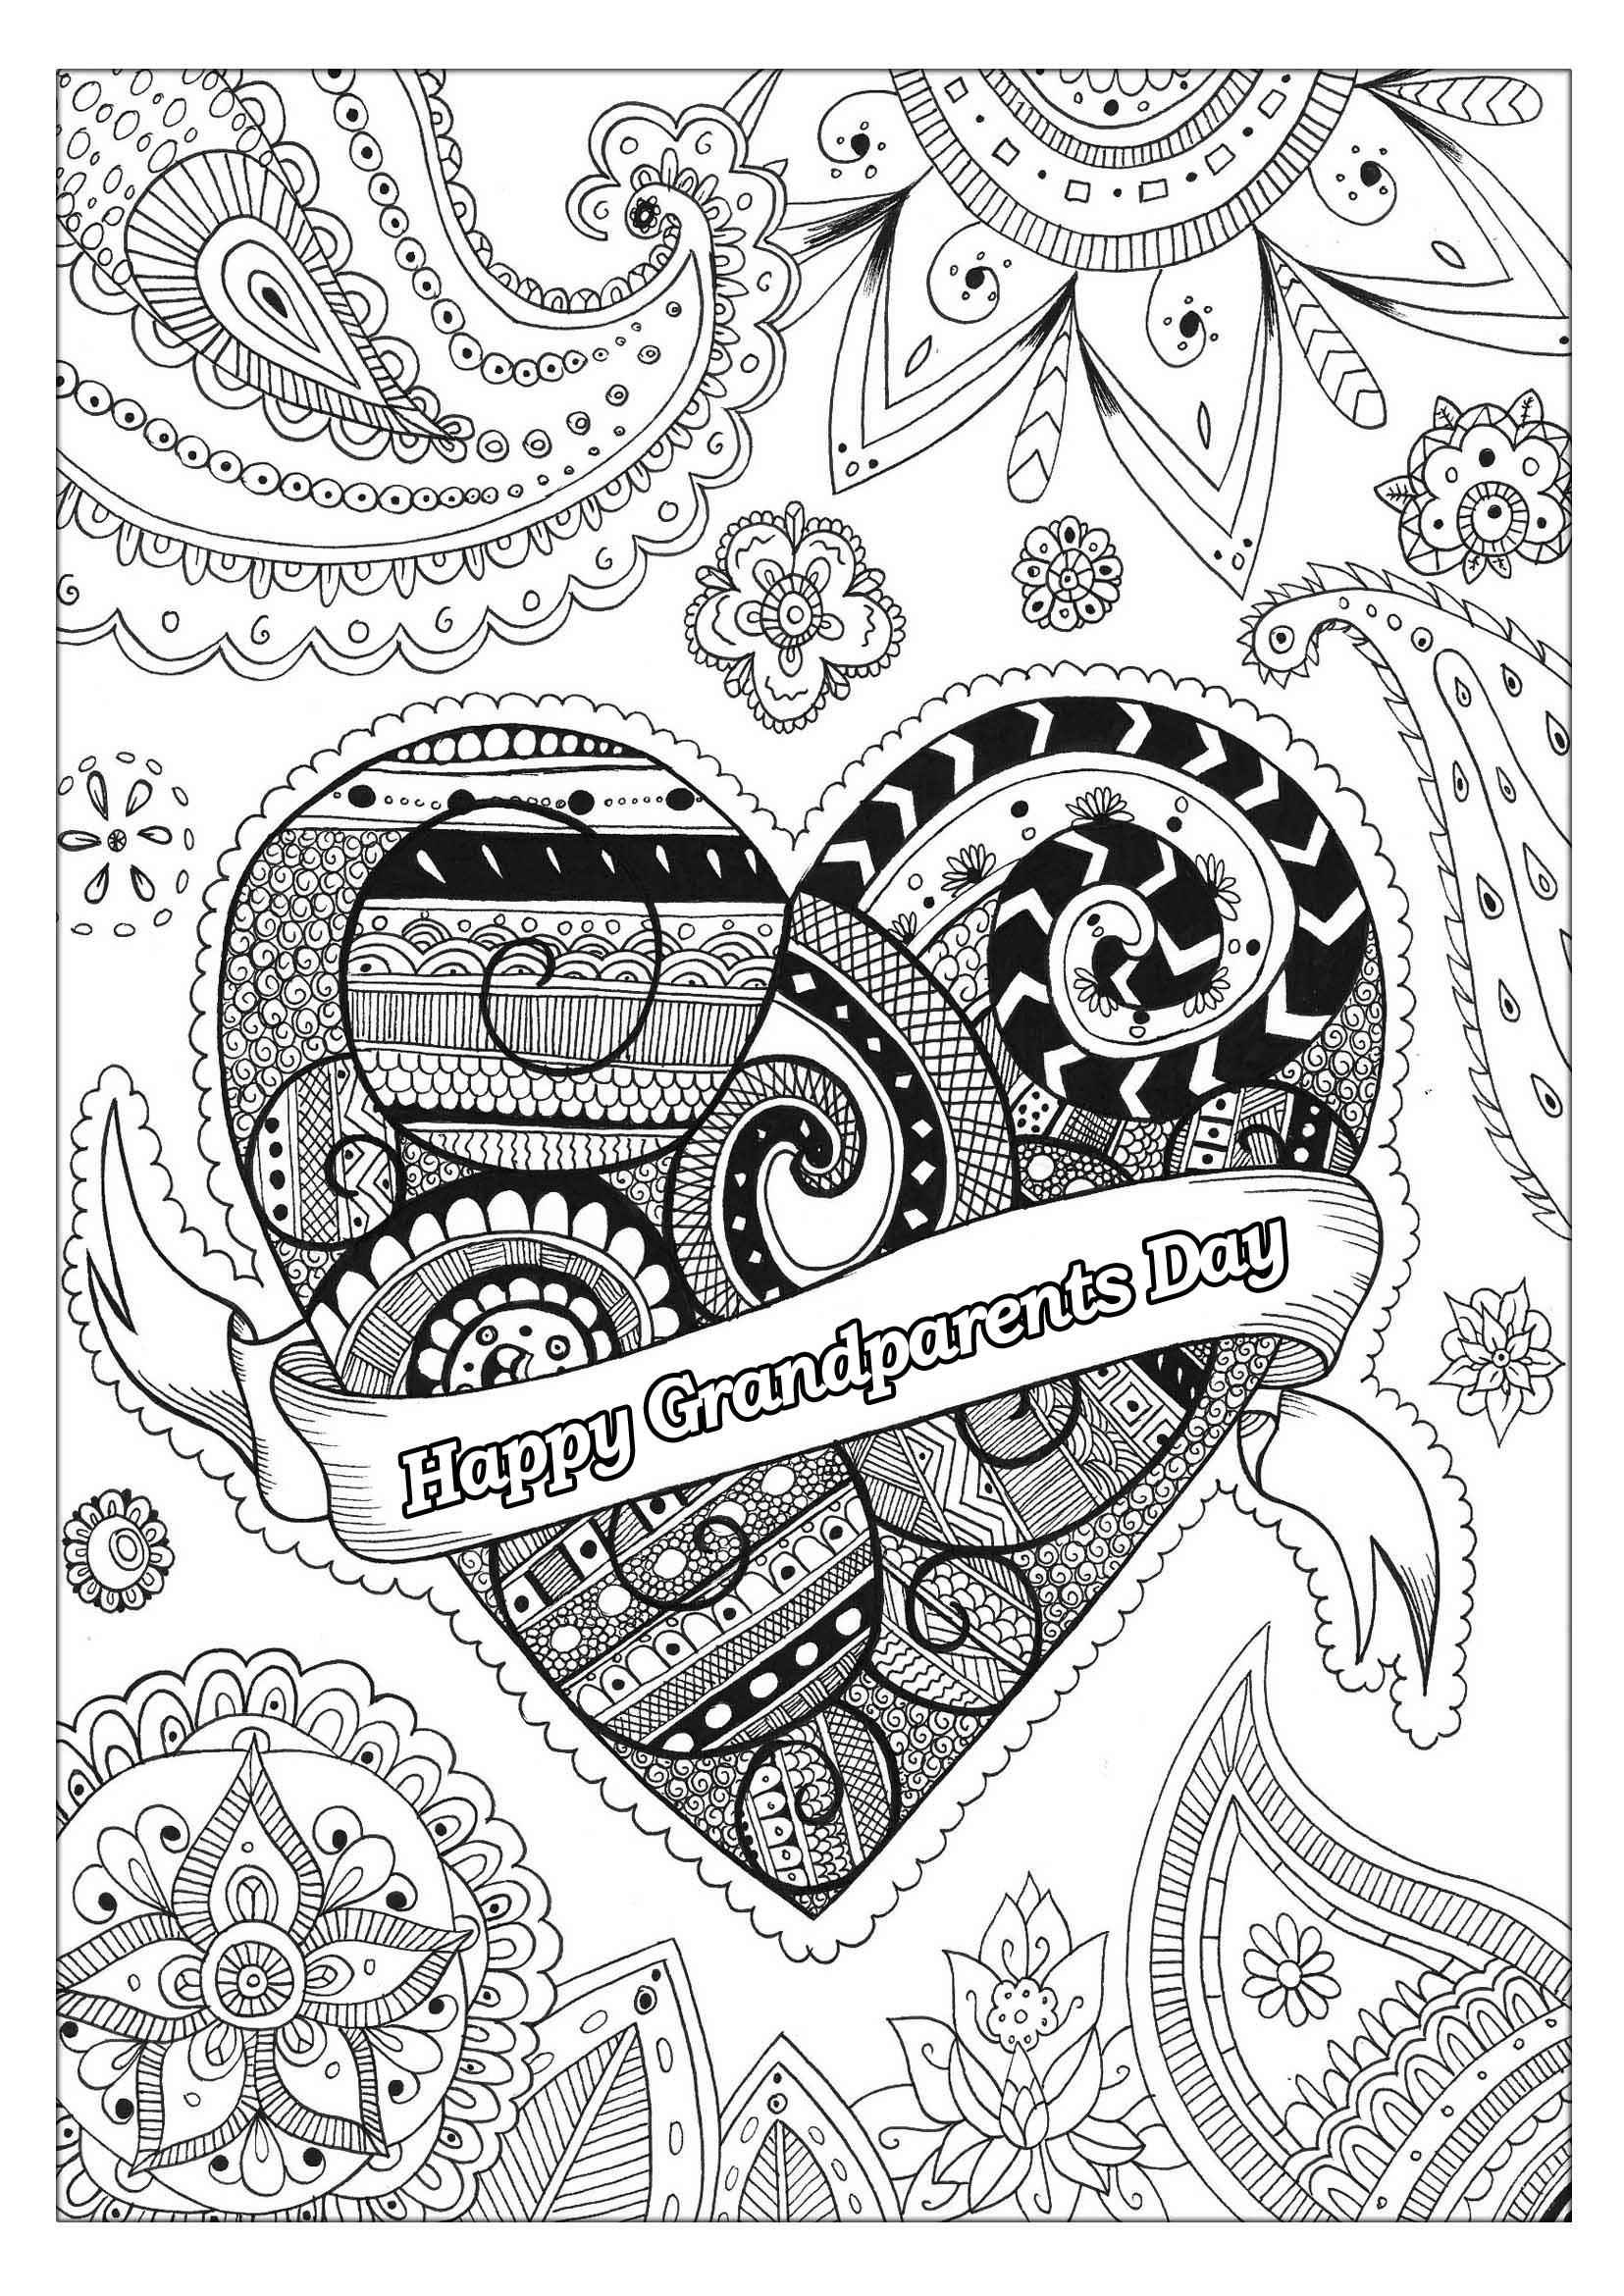 Grandparents day 2 - Grandparents Day - Coloring pages for adults